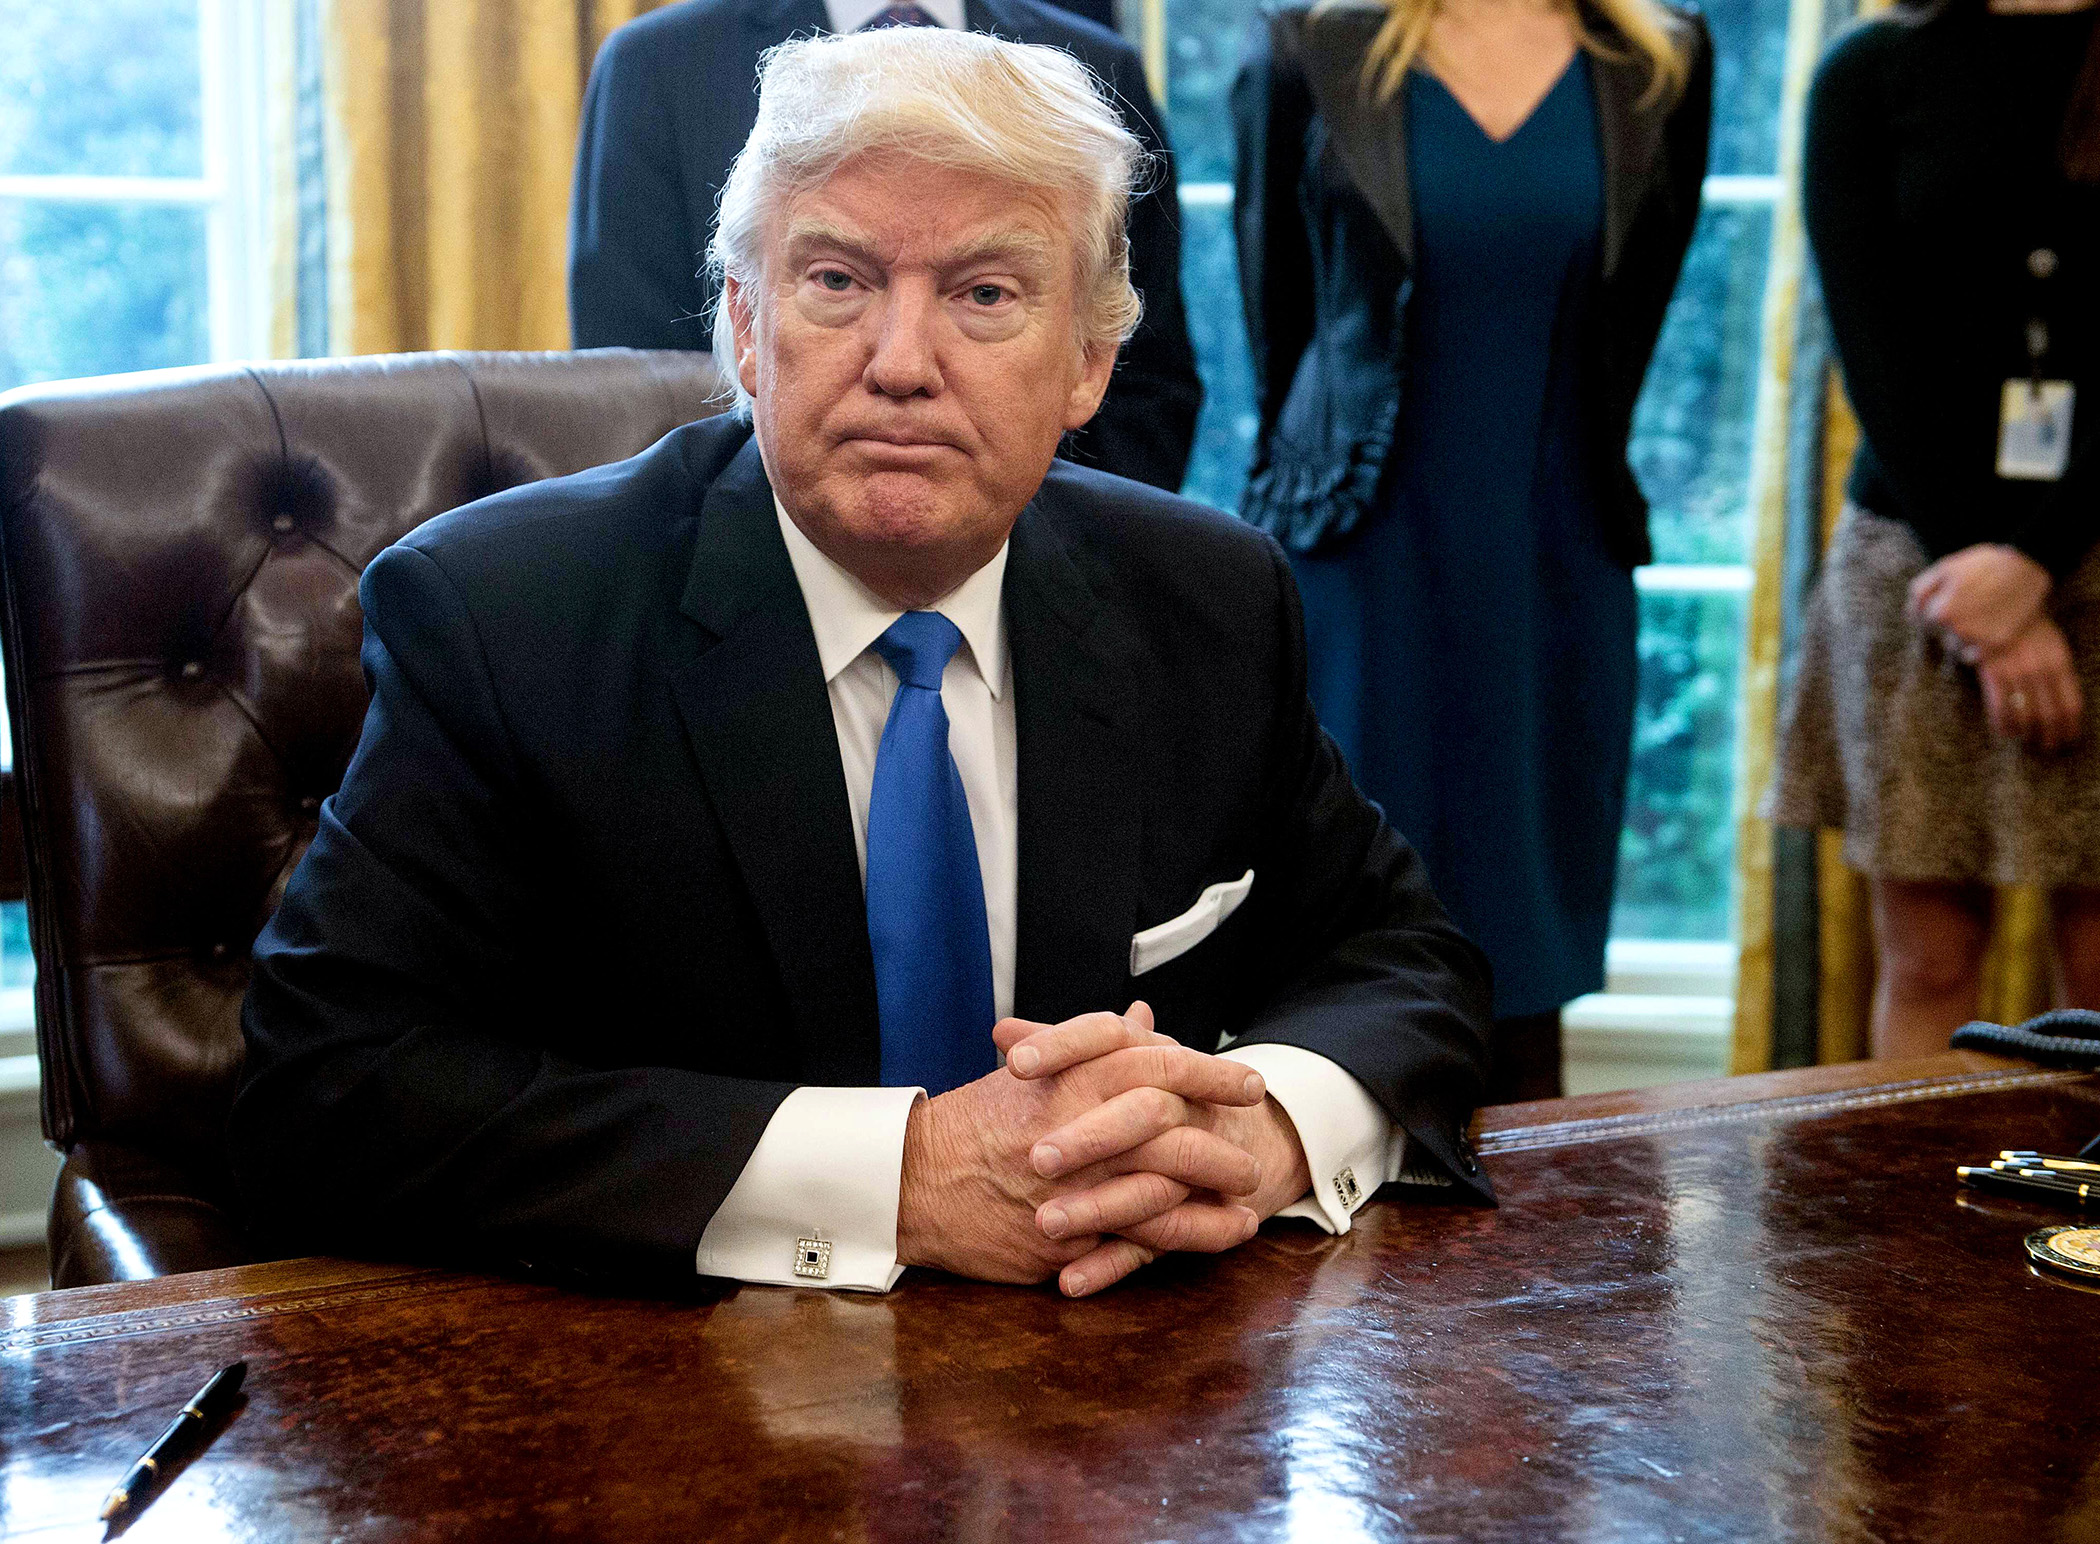 US President Donald Trump looks on after signing executive orders in the Oval Office at the White House in Washington, DC, on January 24, 2017.